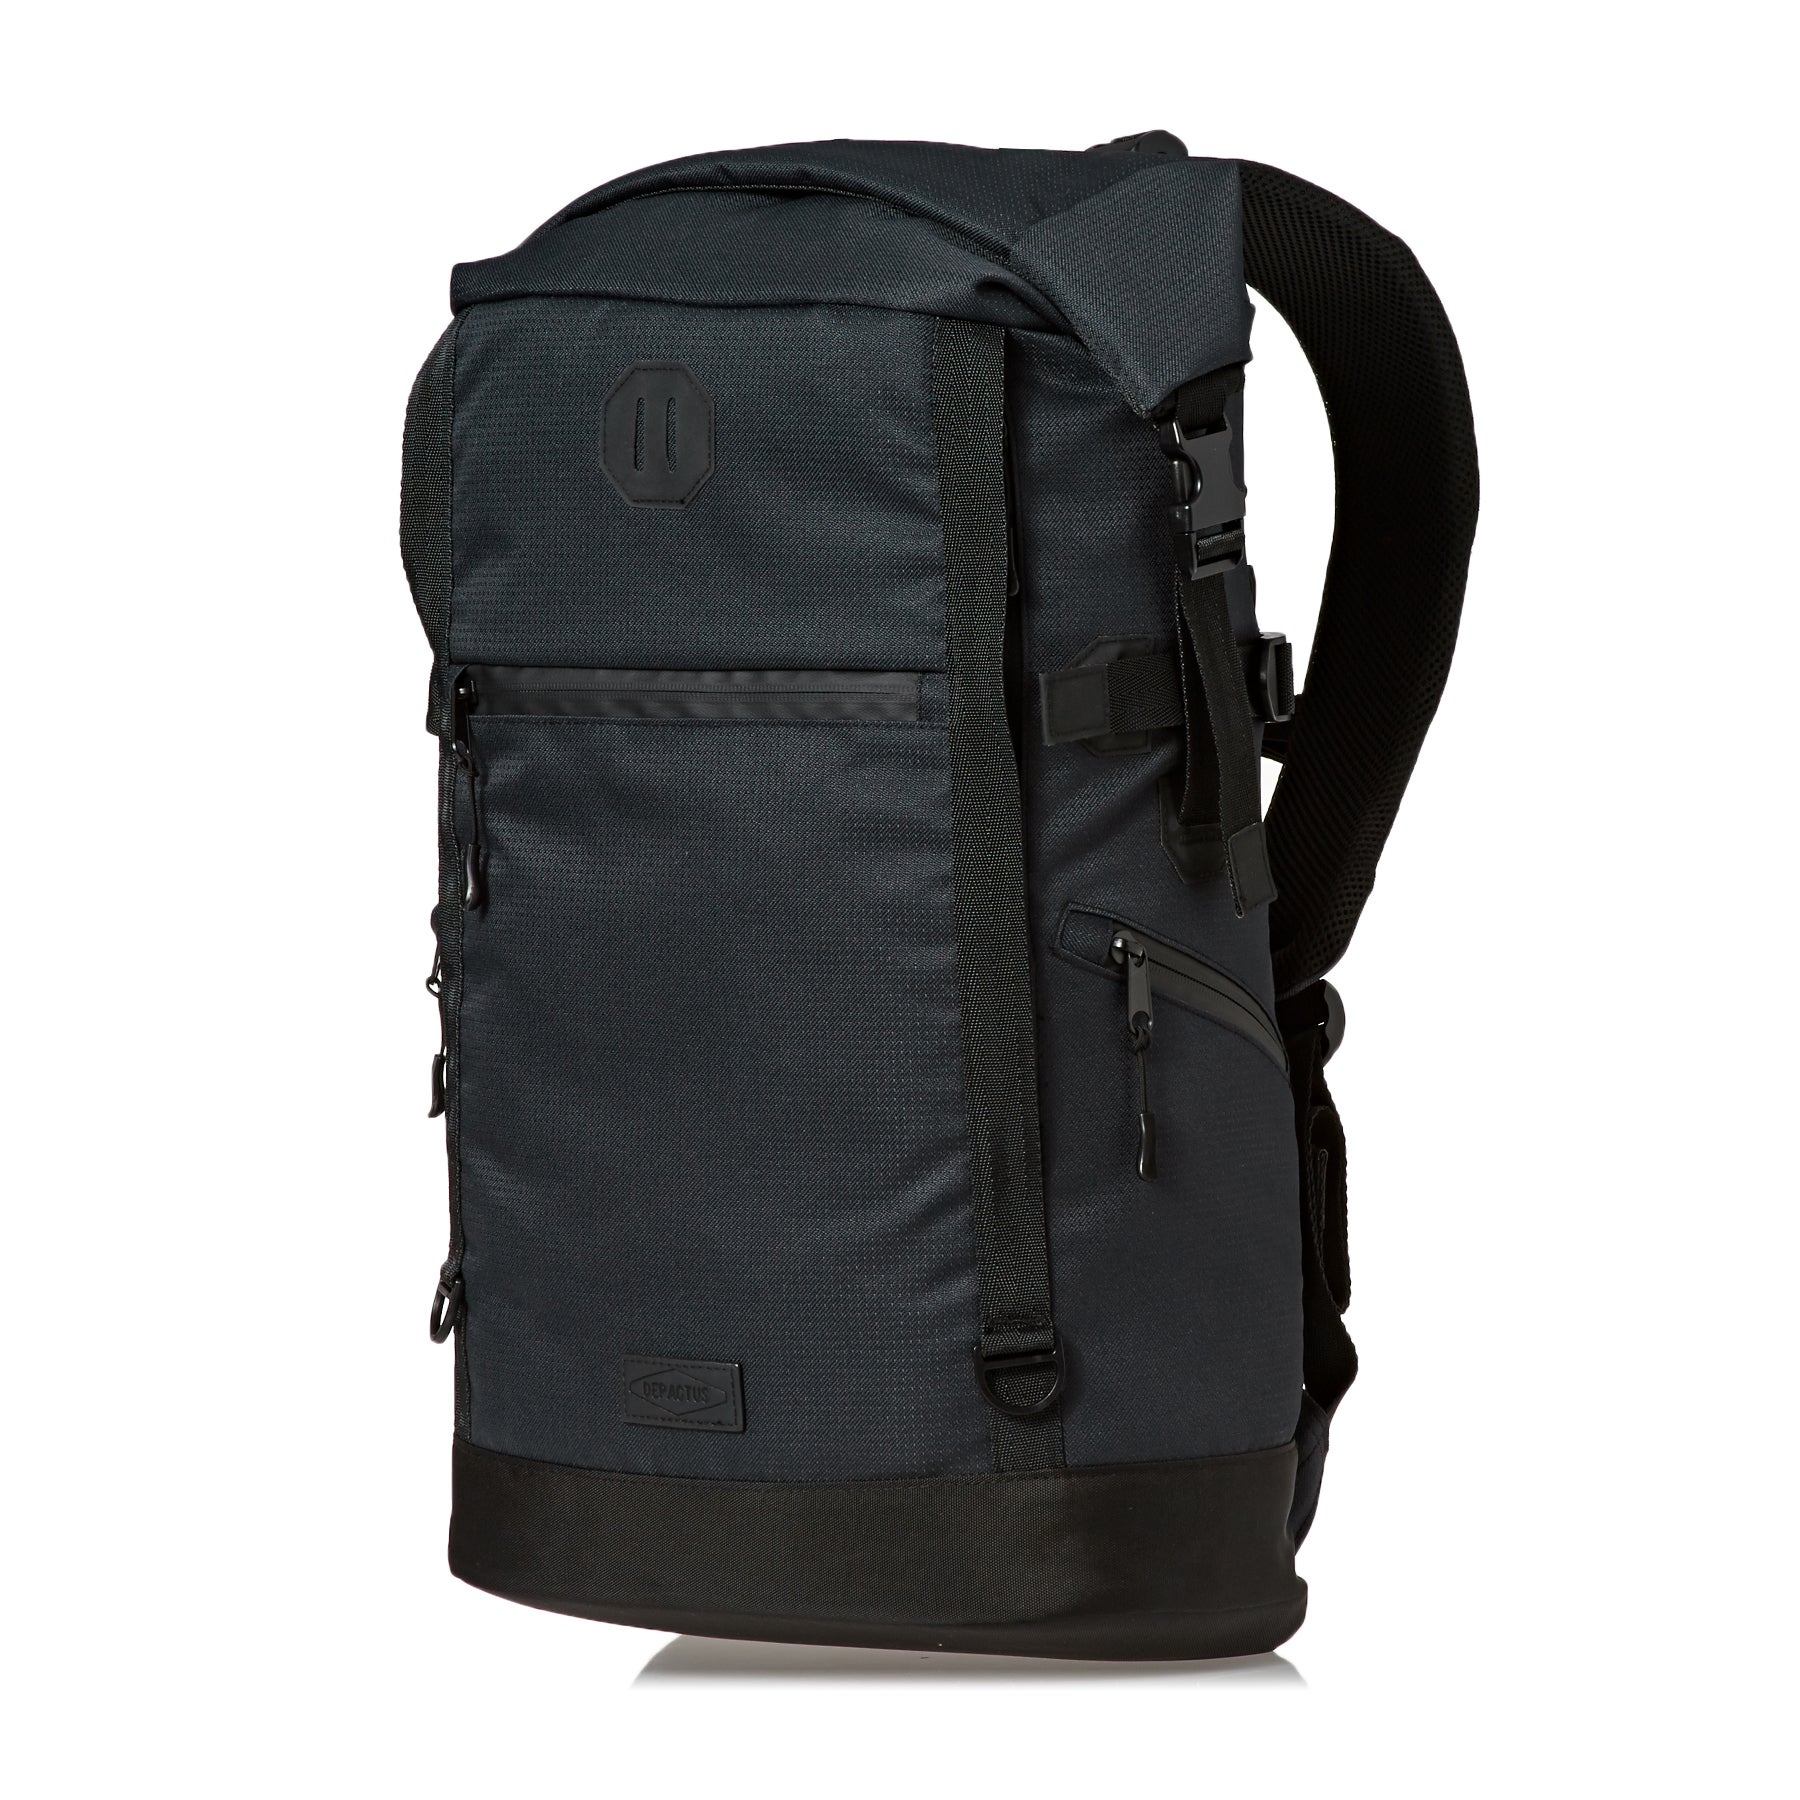 Depactus Denver Roll Top Wet Surf Backpack - Black